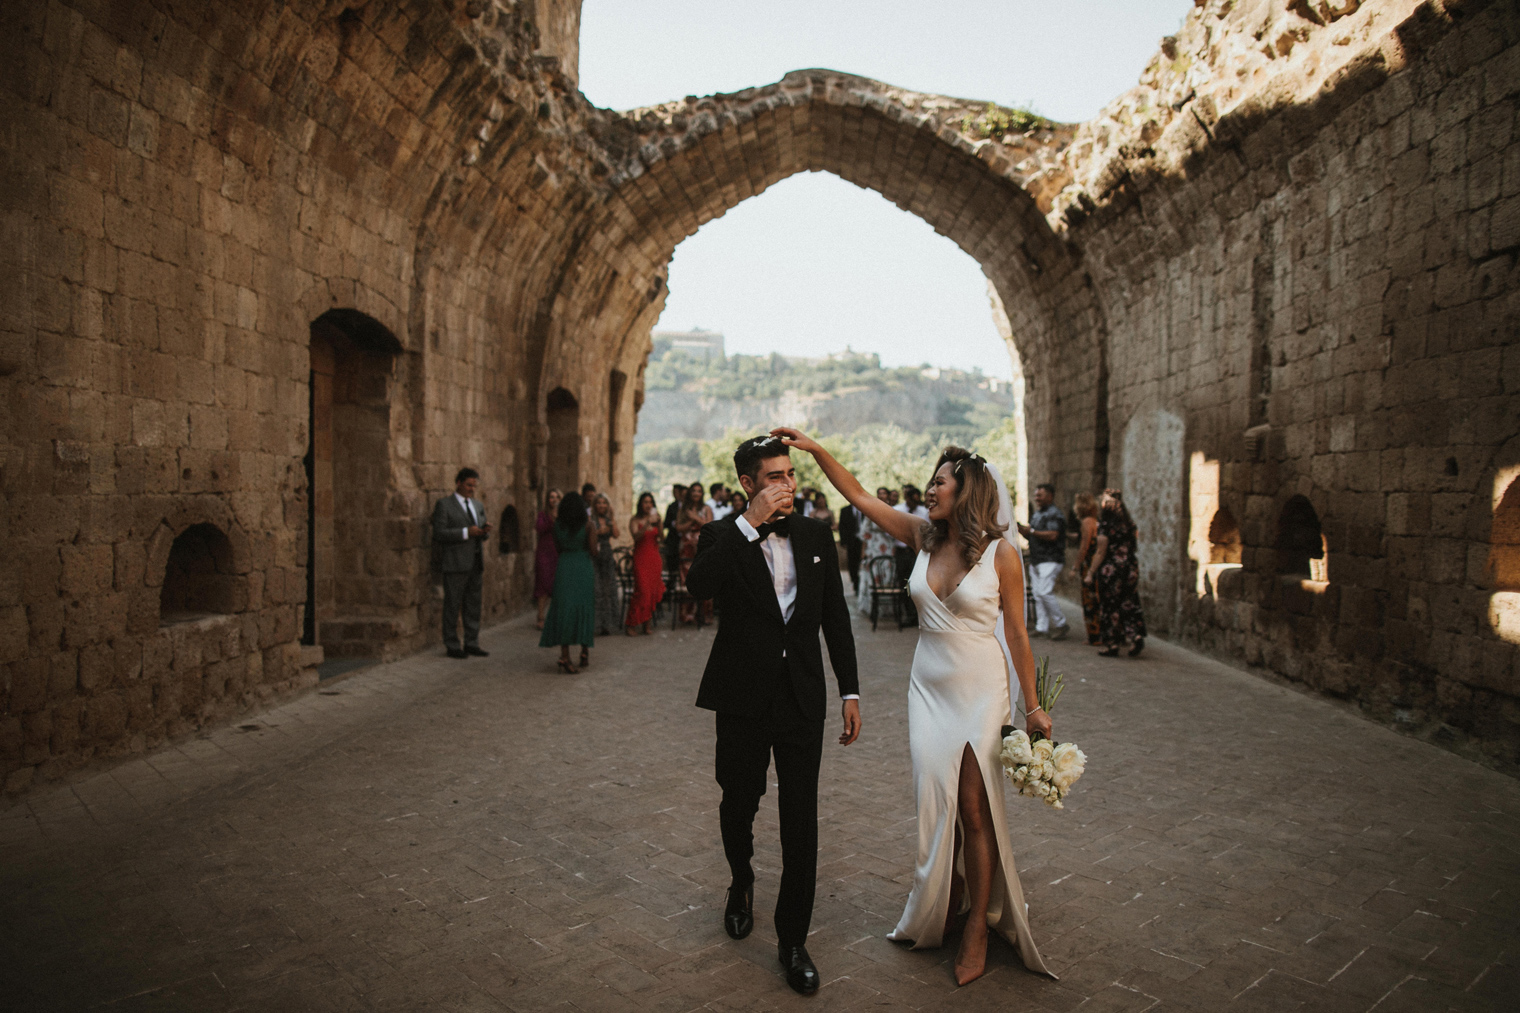 Bride and groom celebrating wedding at La Badia Di Orvieto